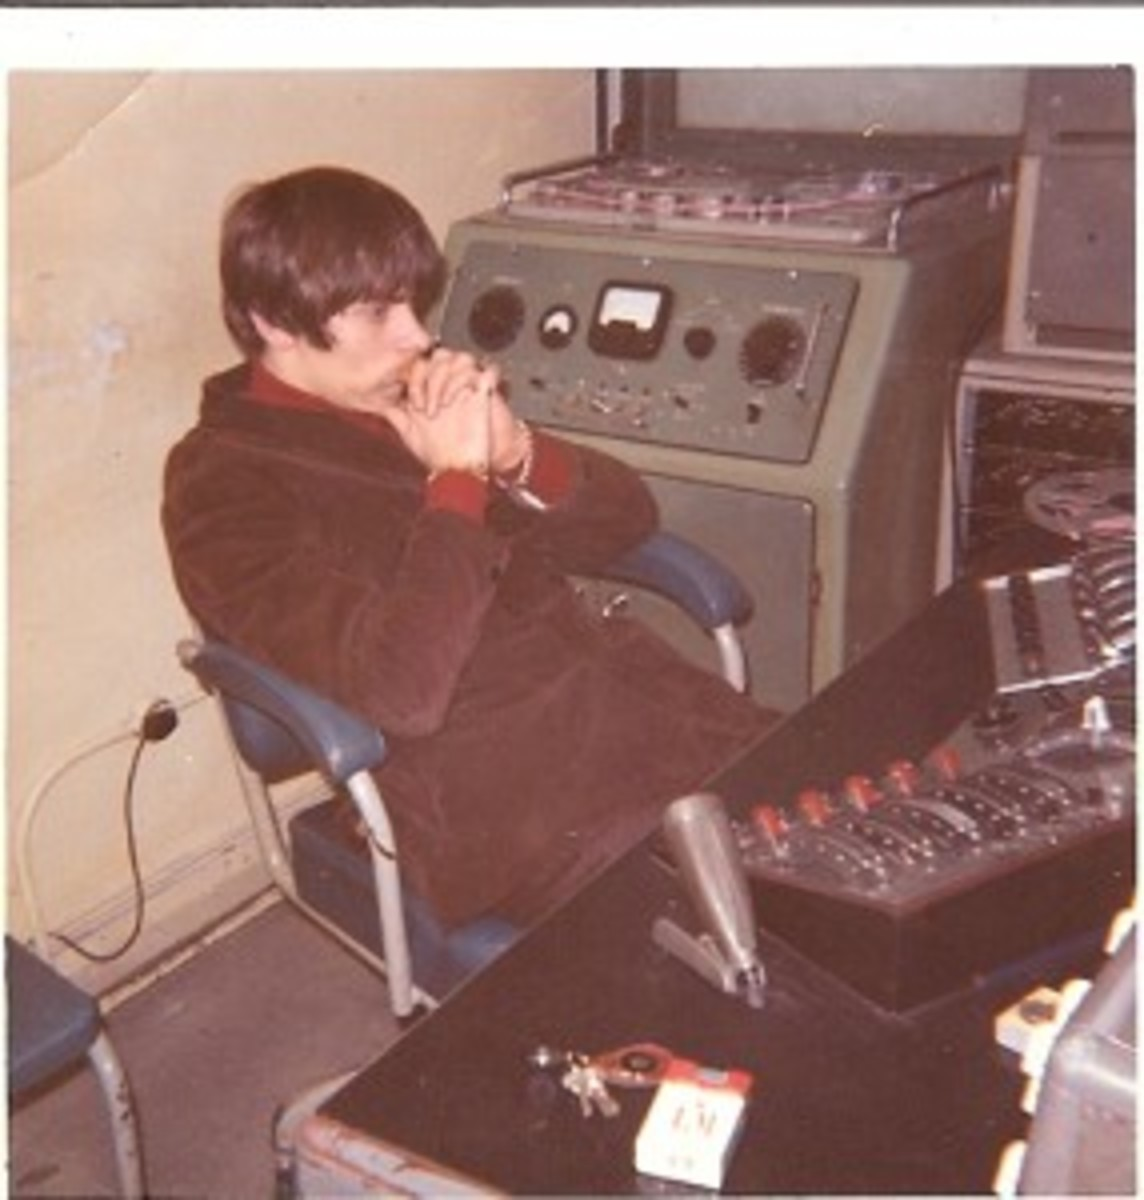 Johns at IBC in the early 60s. Photo courtesy of Glyn Johns.